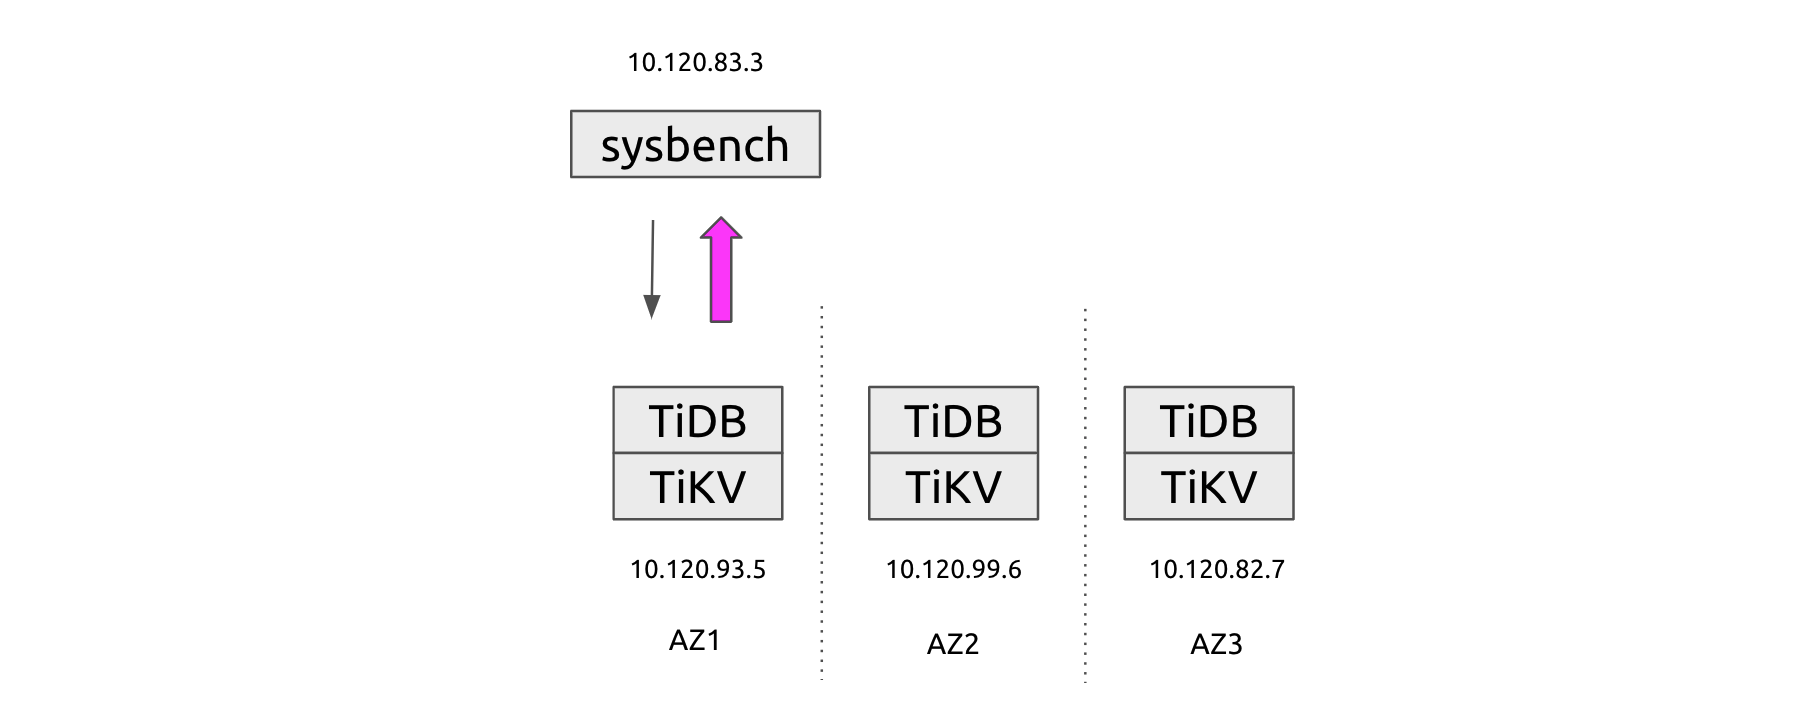 The test cluster topology